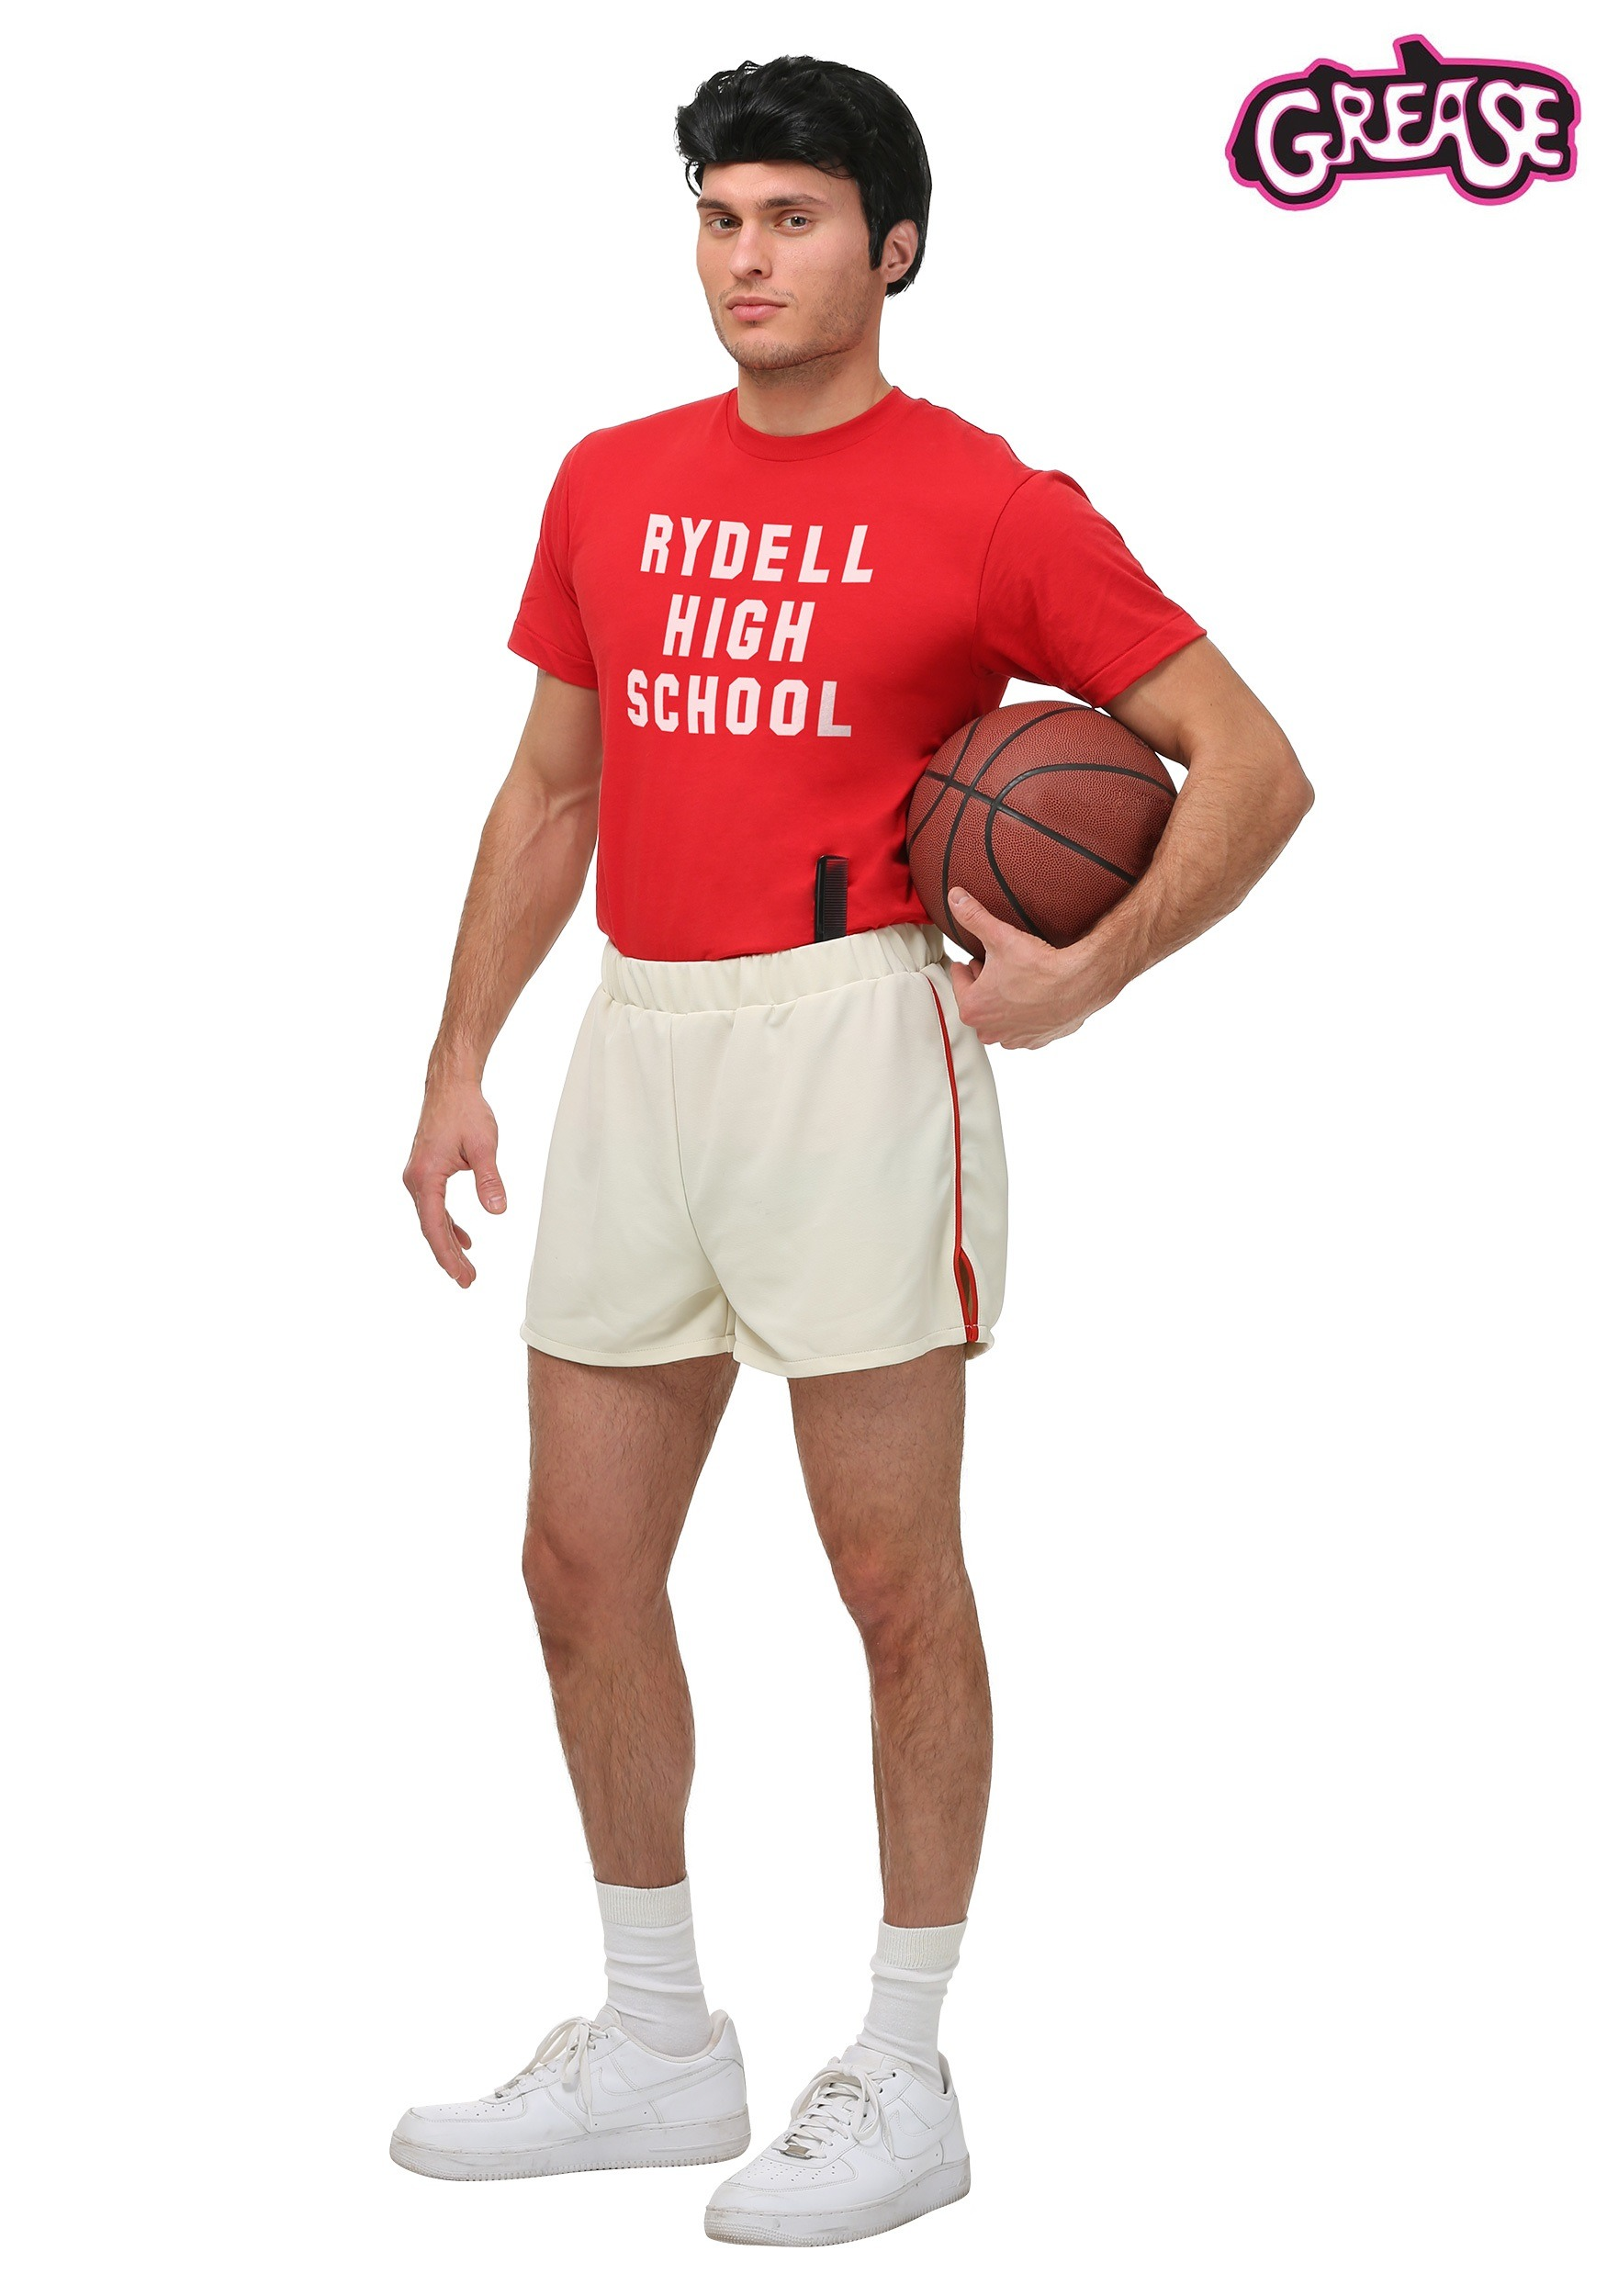 sc 1 st  Halloween Costumes & Grease Gym Danny Costume